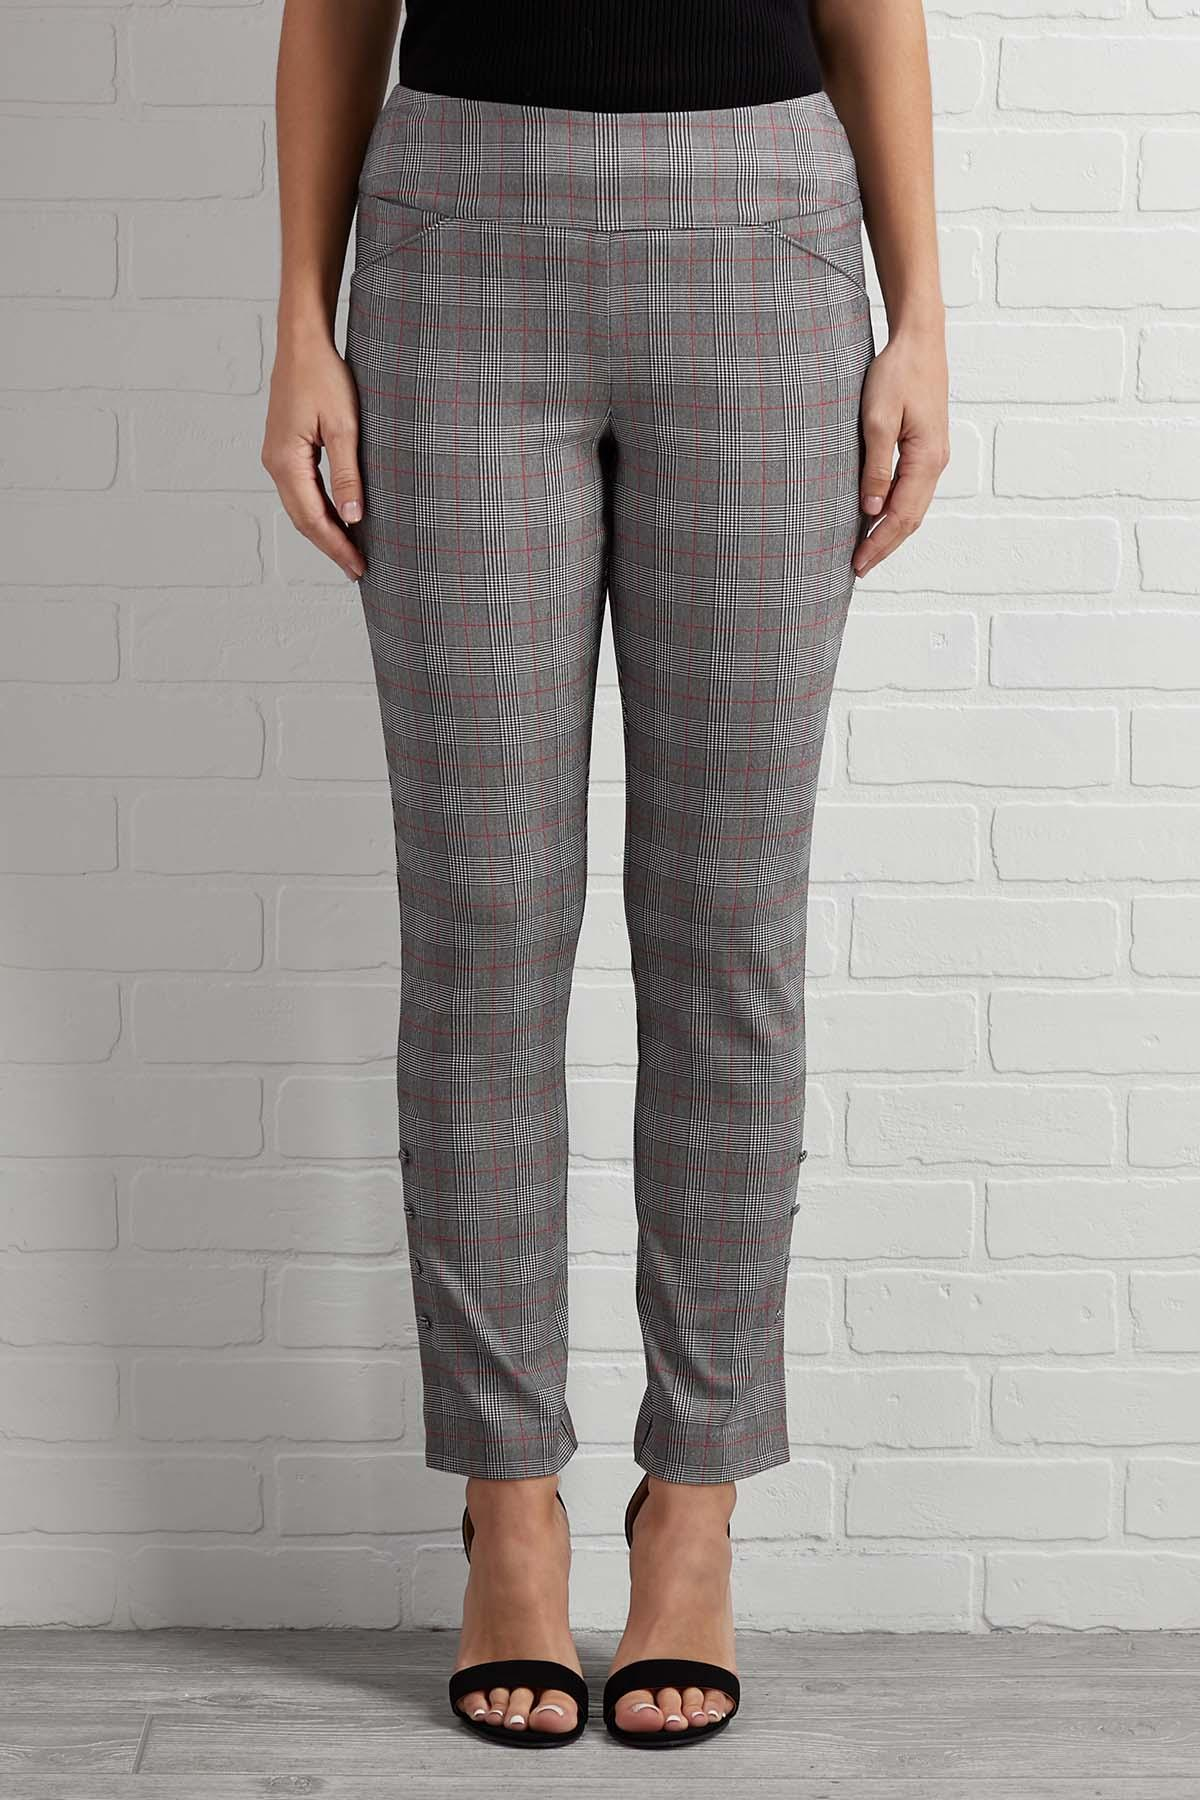 On The Checklist Pants